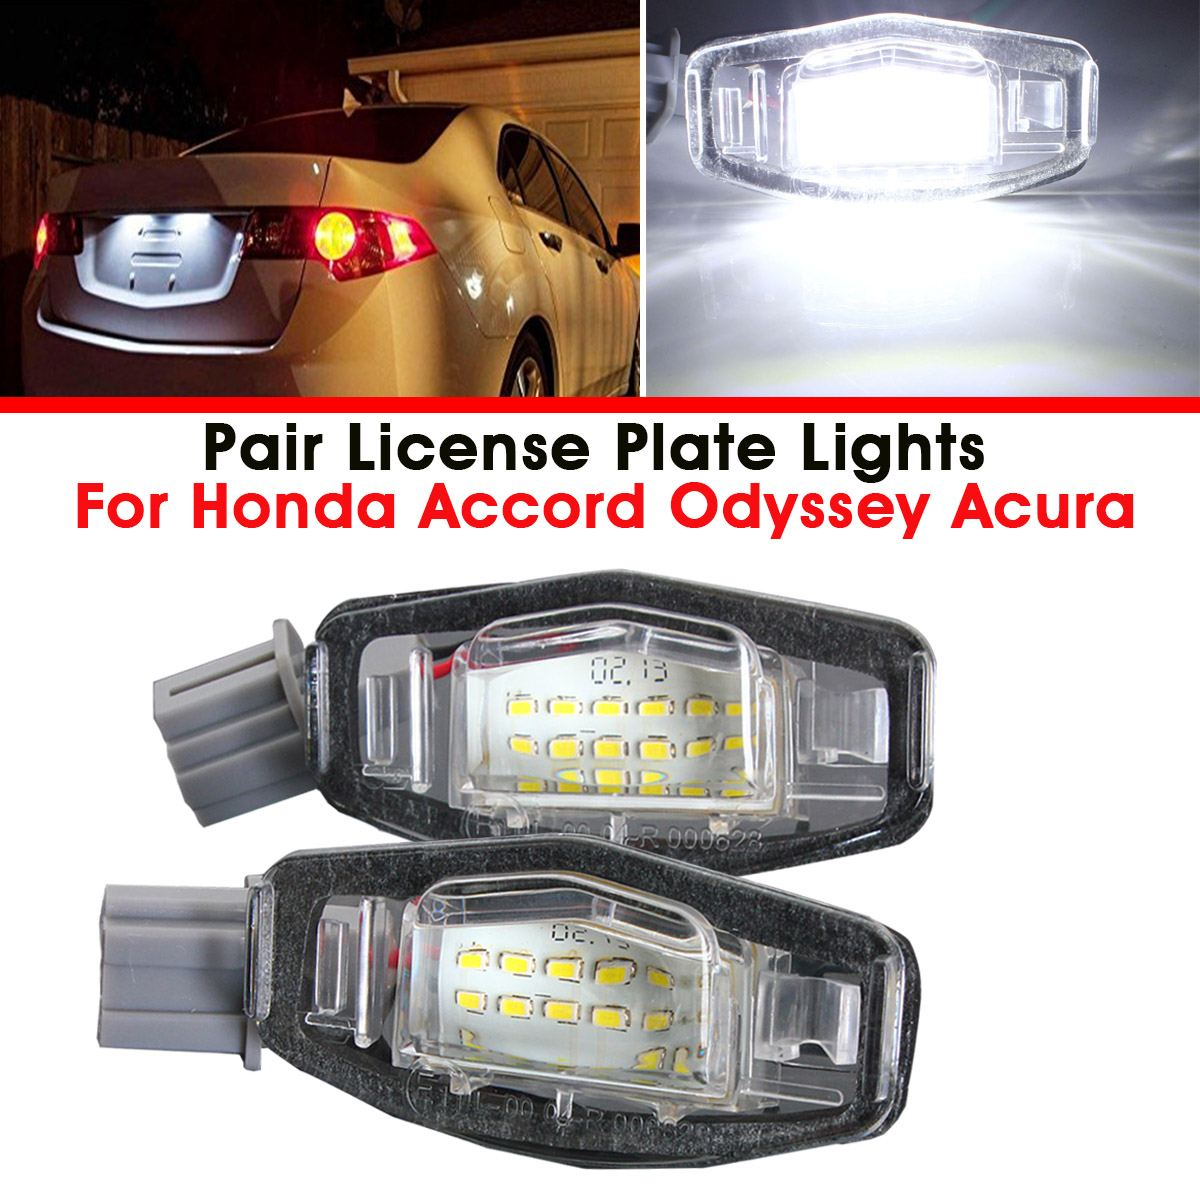 2X 18 LED Number License Plate Light Lamp Error Free For Honda Accord Odyssey Civic Sedan City Acura MDX TSX ILX RDX RL TL